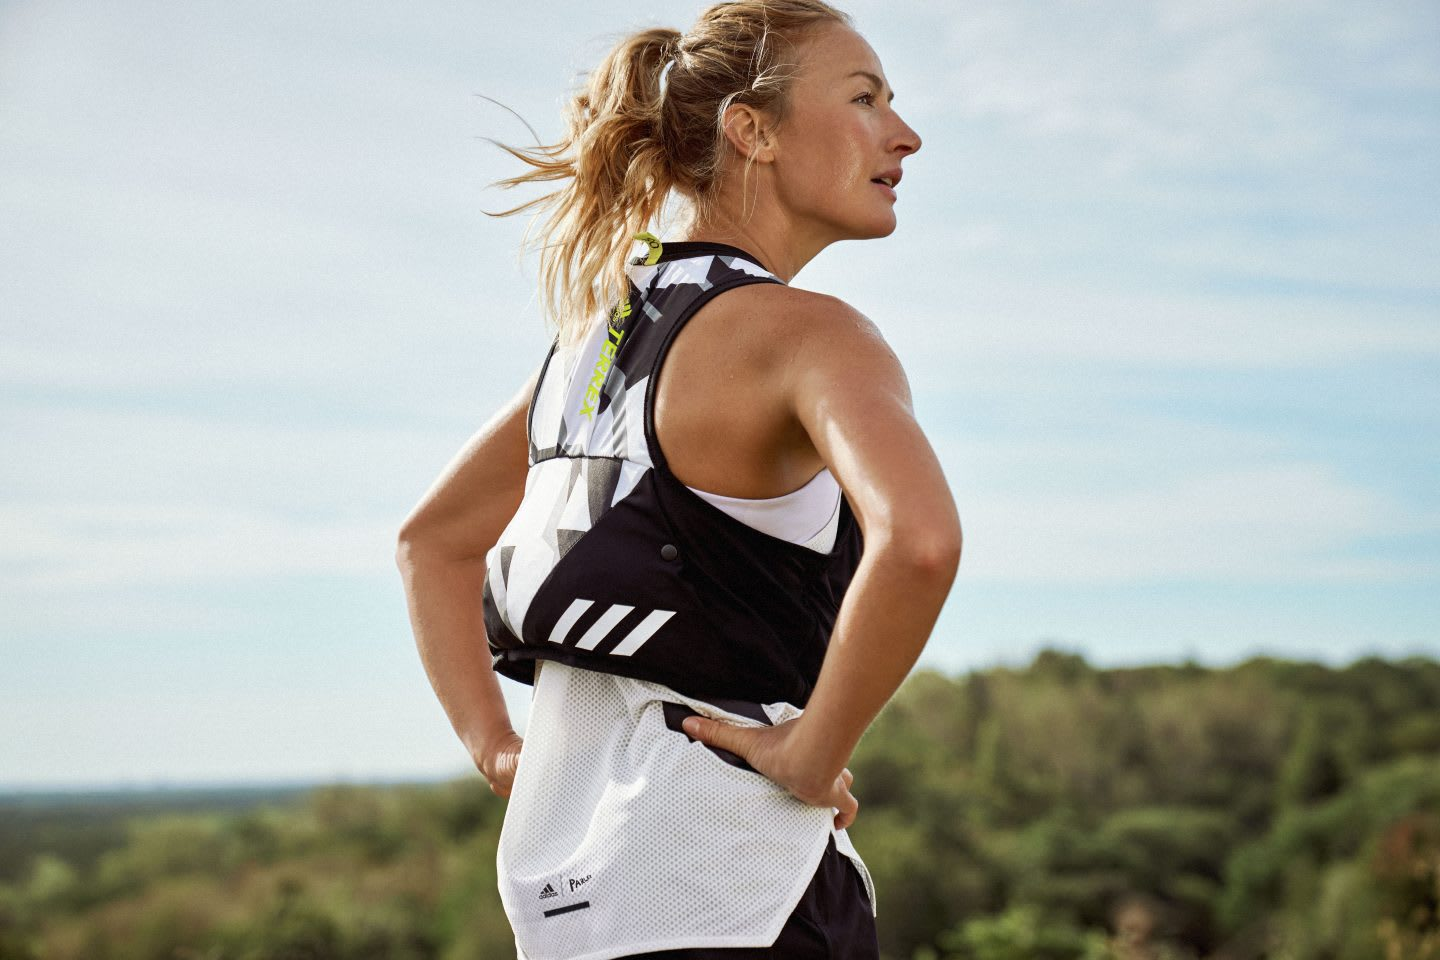 Woman looking out into distance at while trail running, adidas. sport. outdoors, running, apparel